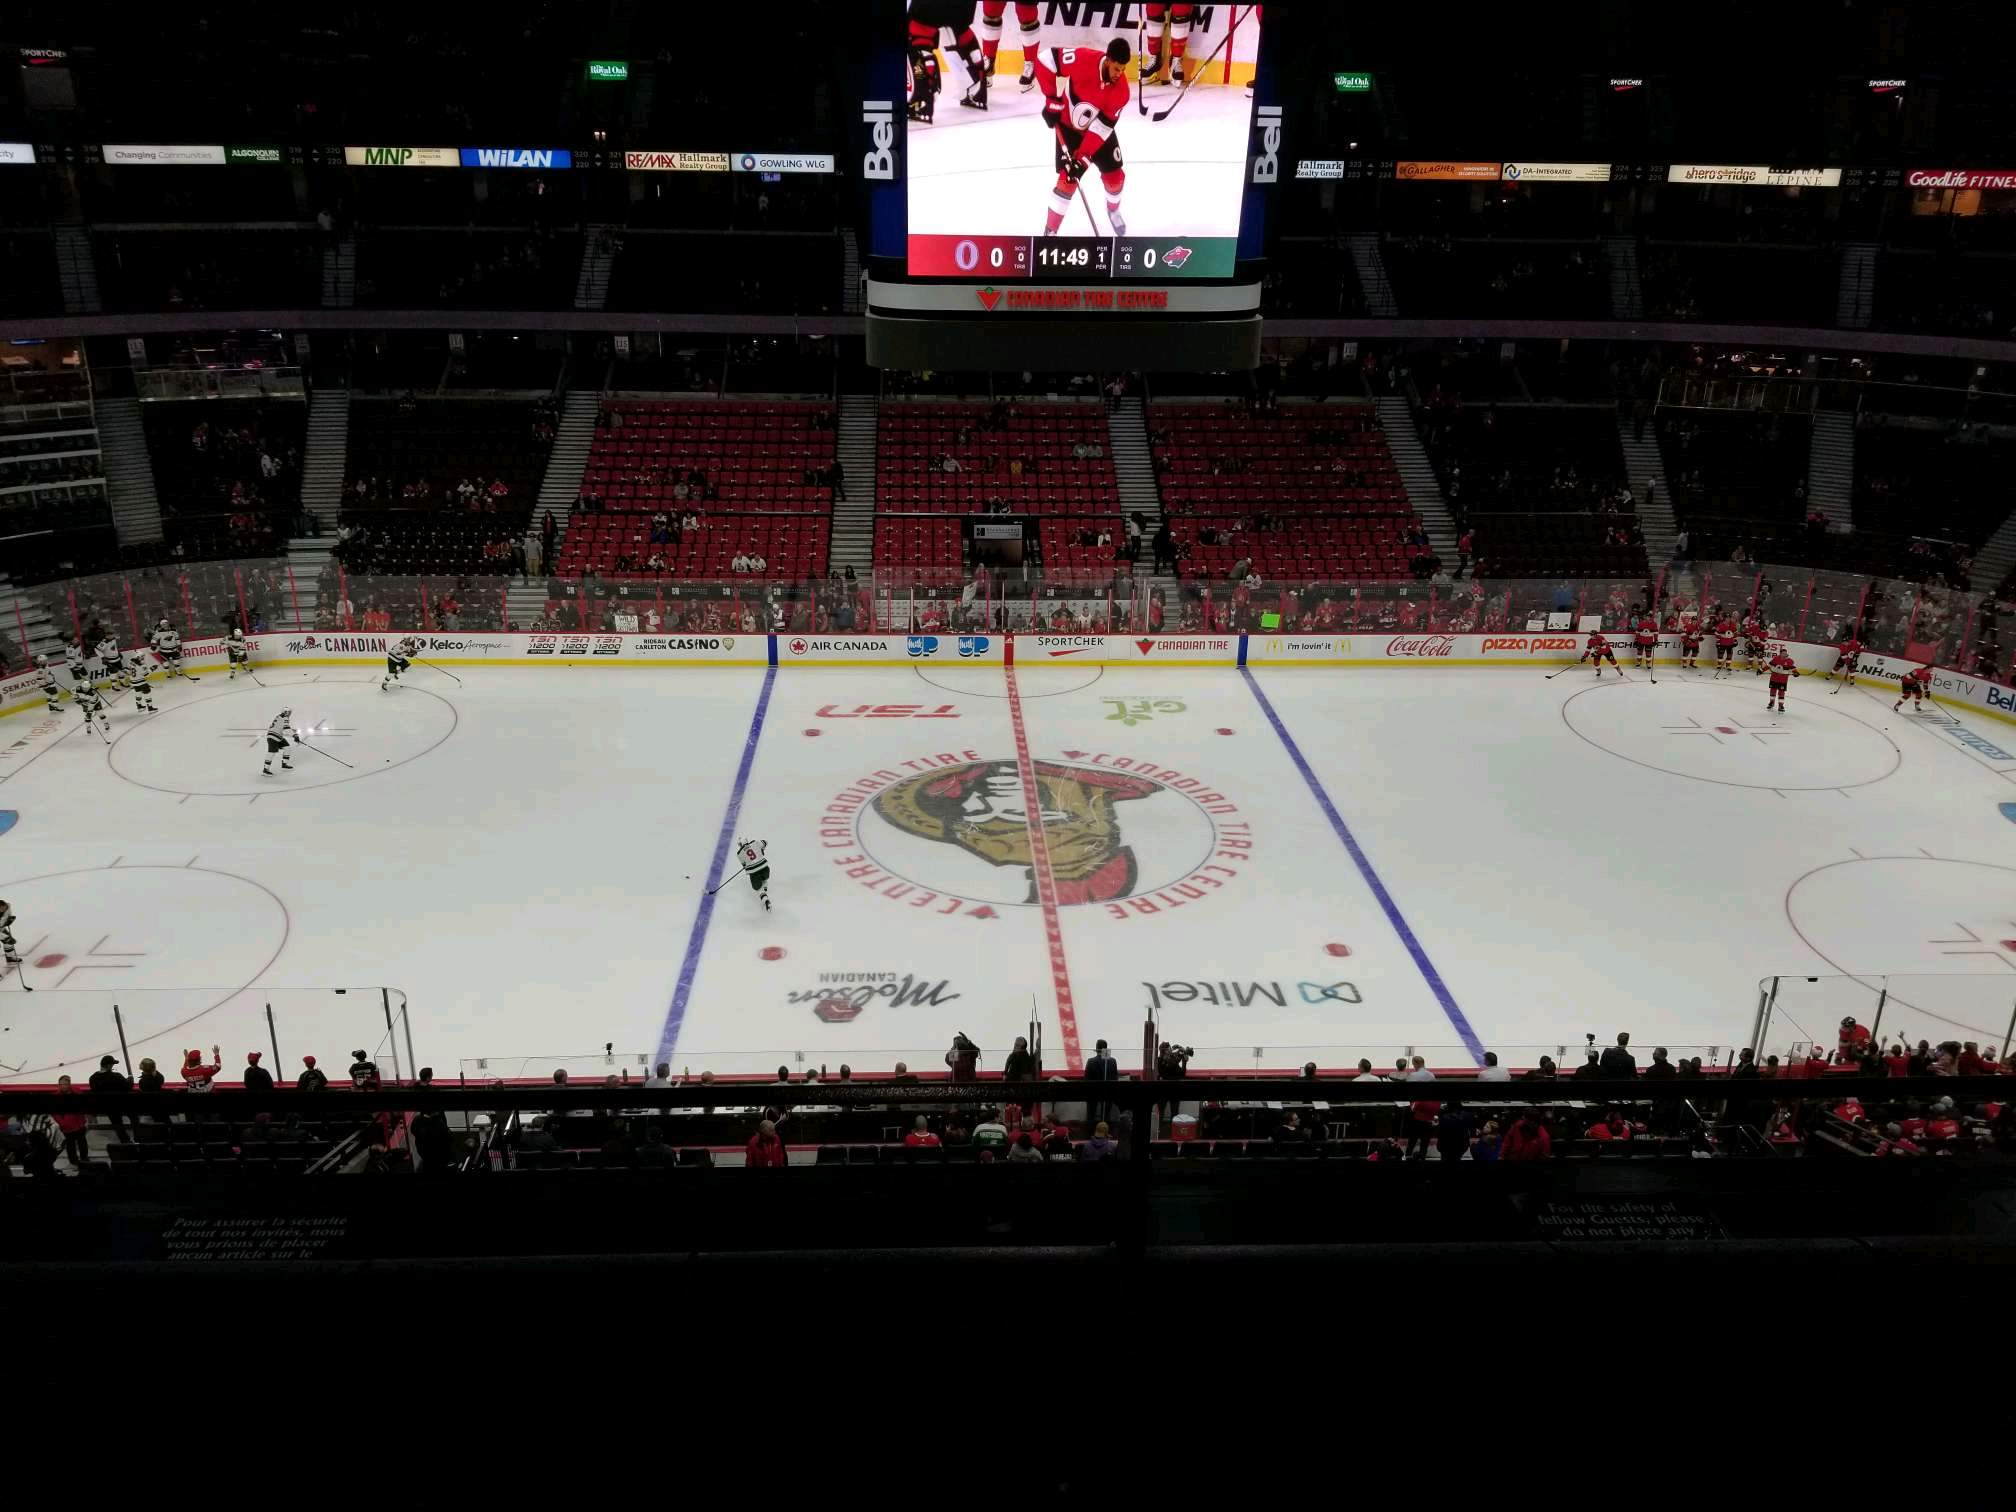 Canadian Tire Centre Section 308 Row b Seat 13